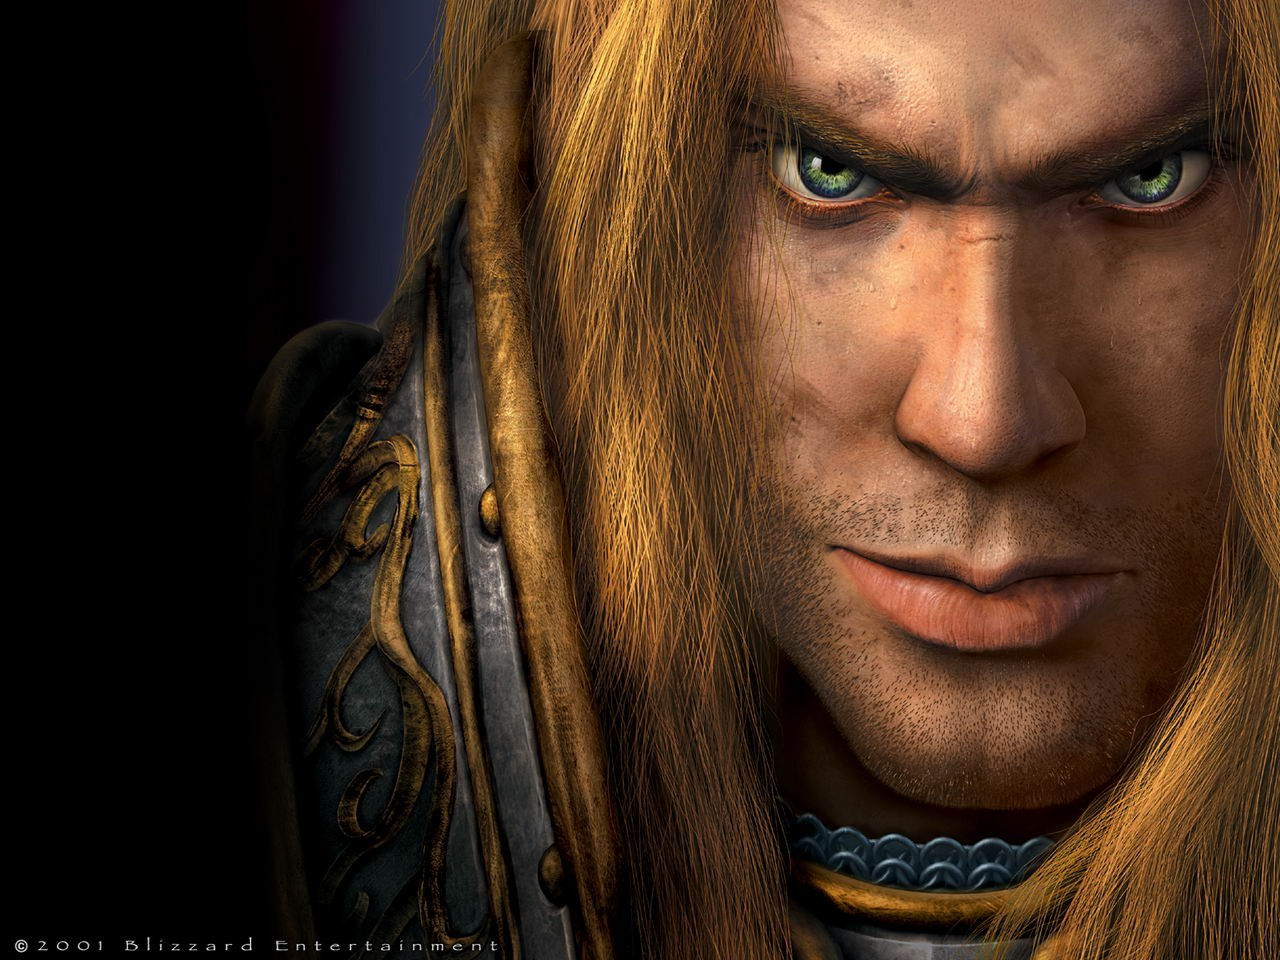 warcraft-3-human-race-wallpaper-arthas